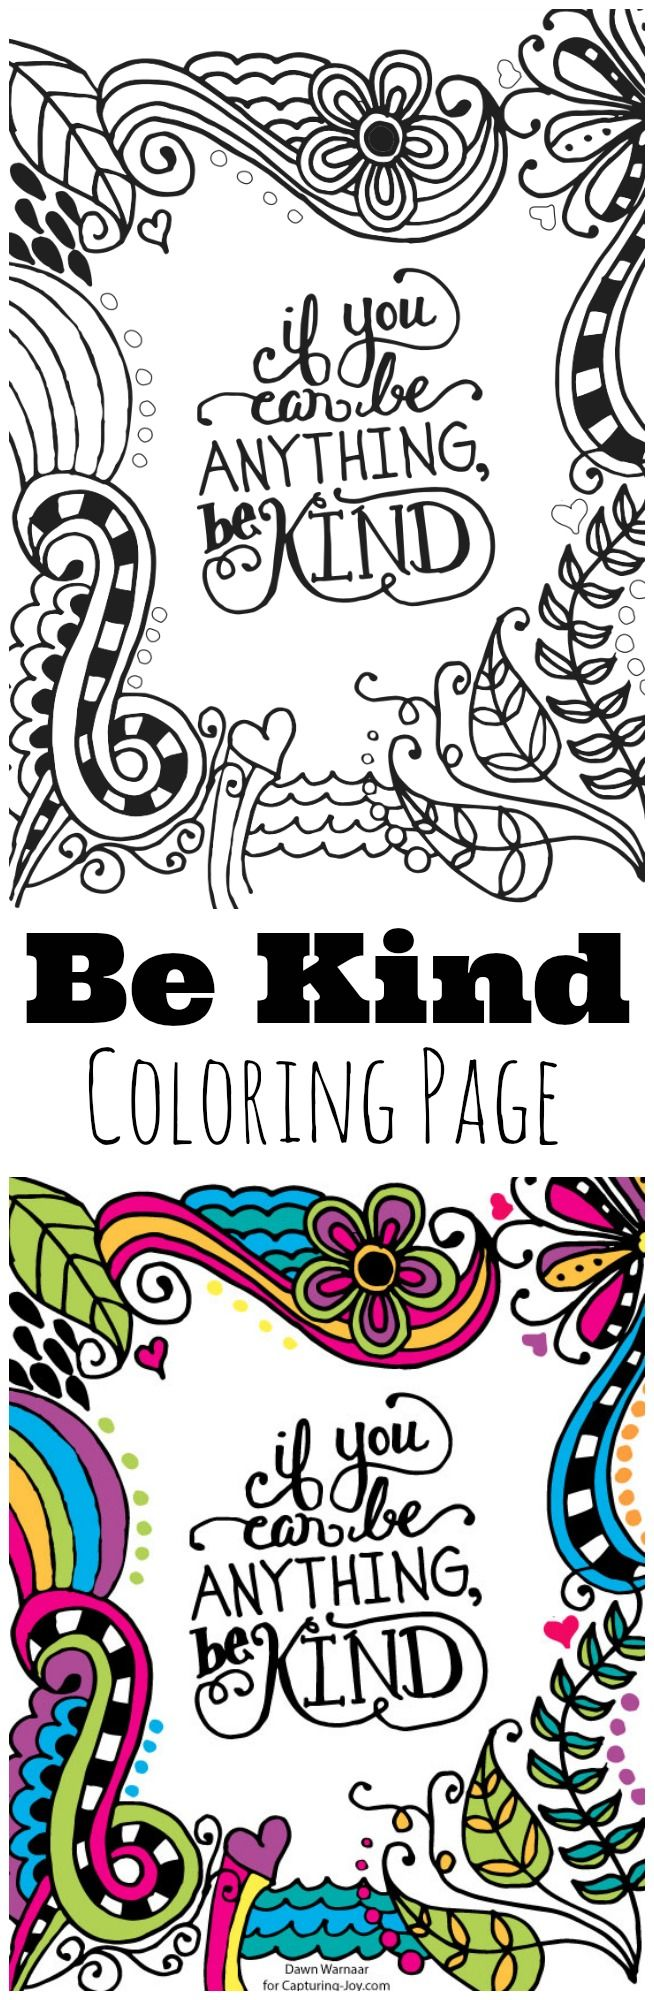 Be Kind Kids Coloring Page, great for kids to help encourage kindness, hang on a mirror to remind them, or home decor. Digital colorful print also available to download.